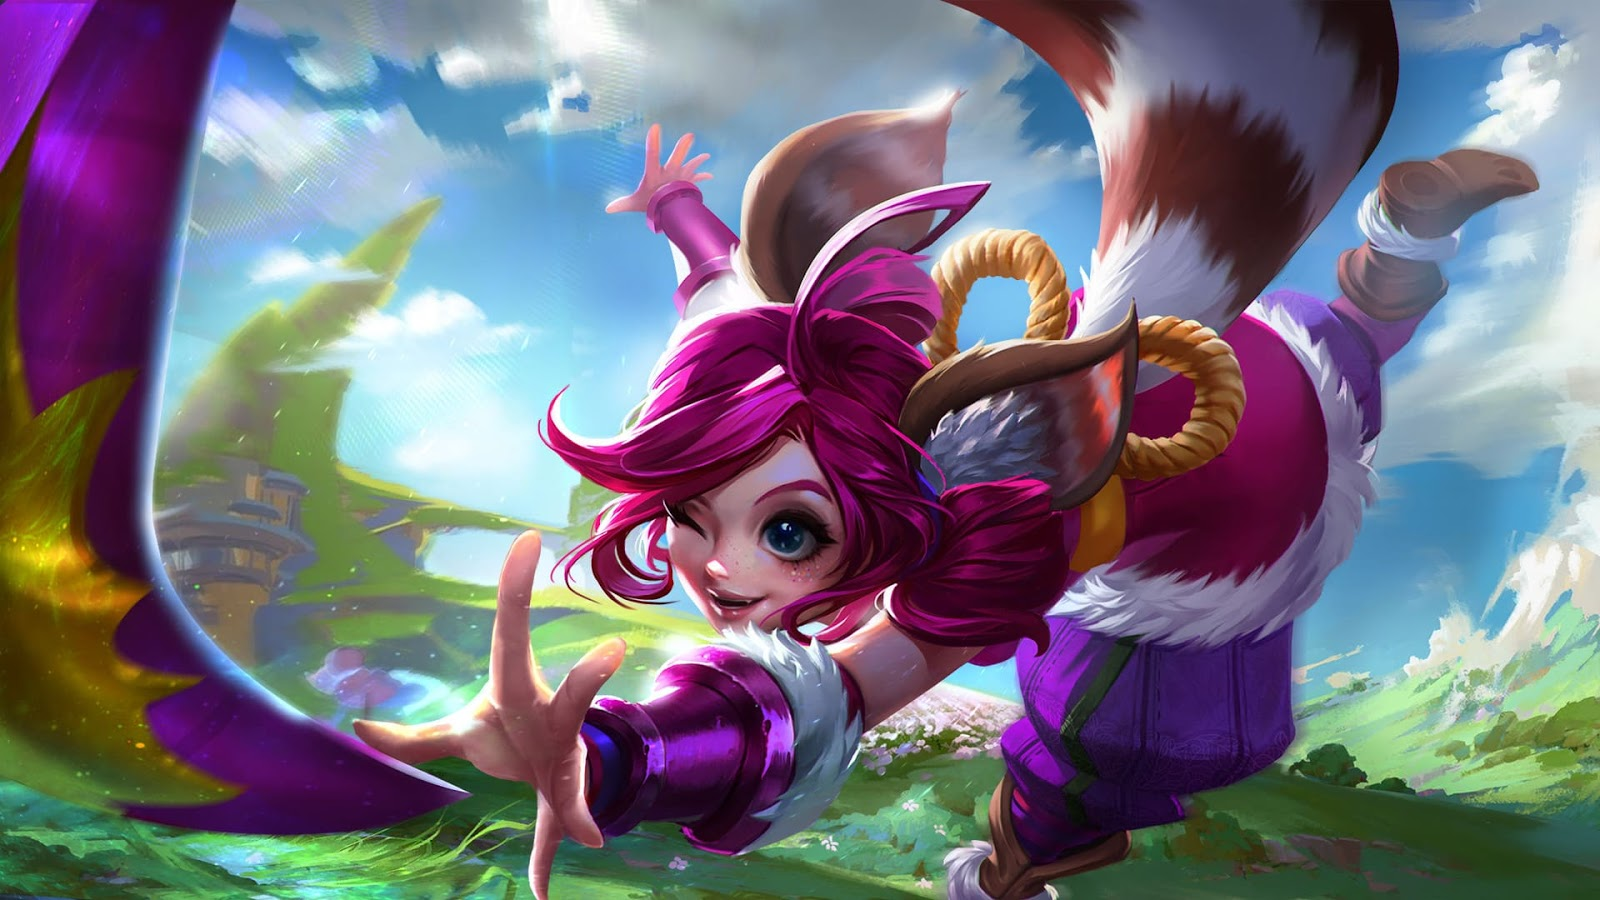 Wallpaper Nana Feline Wizard Skin Mobile Legends HD for PC